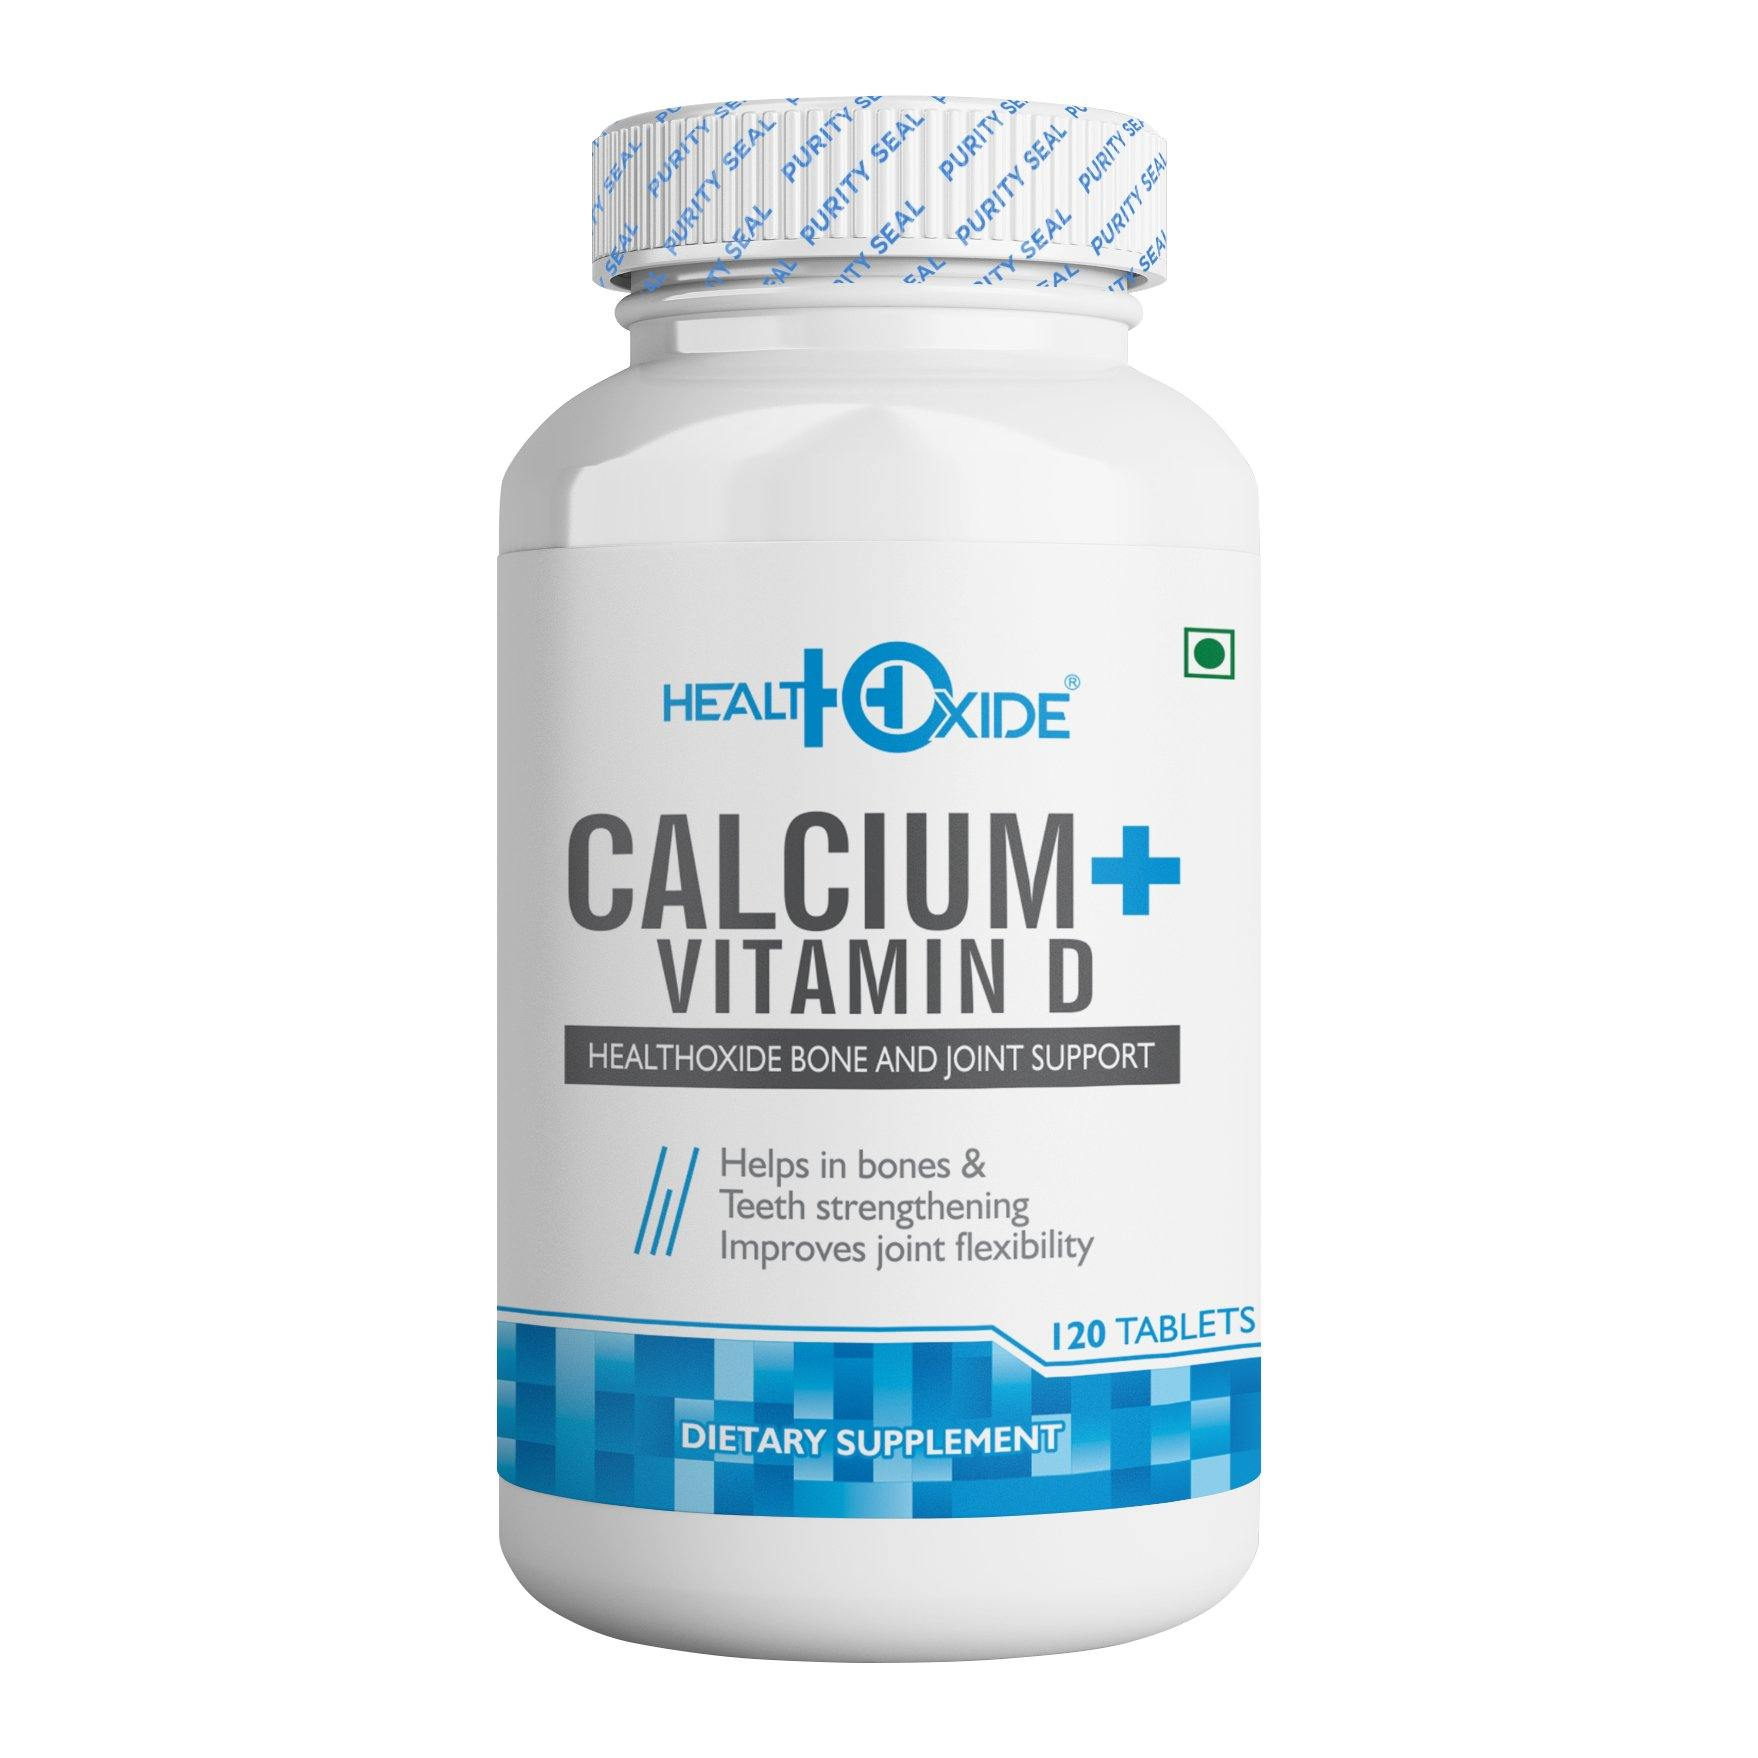 HealthOxide Calcium 625 mg + Vitamin D 400 IU– 120 Tablets